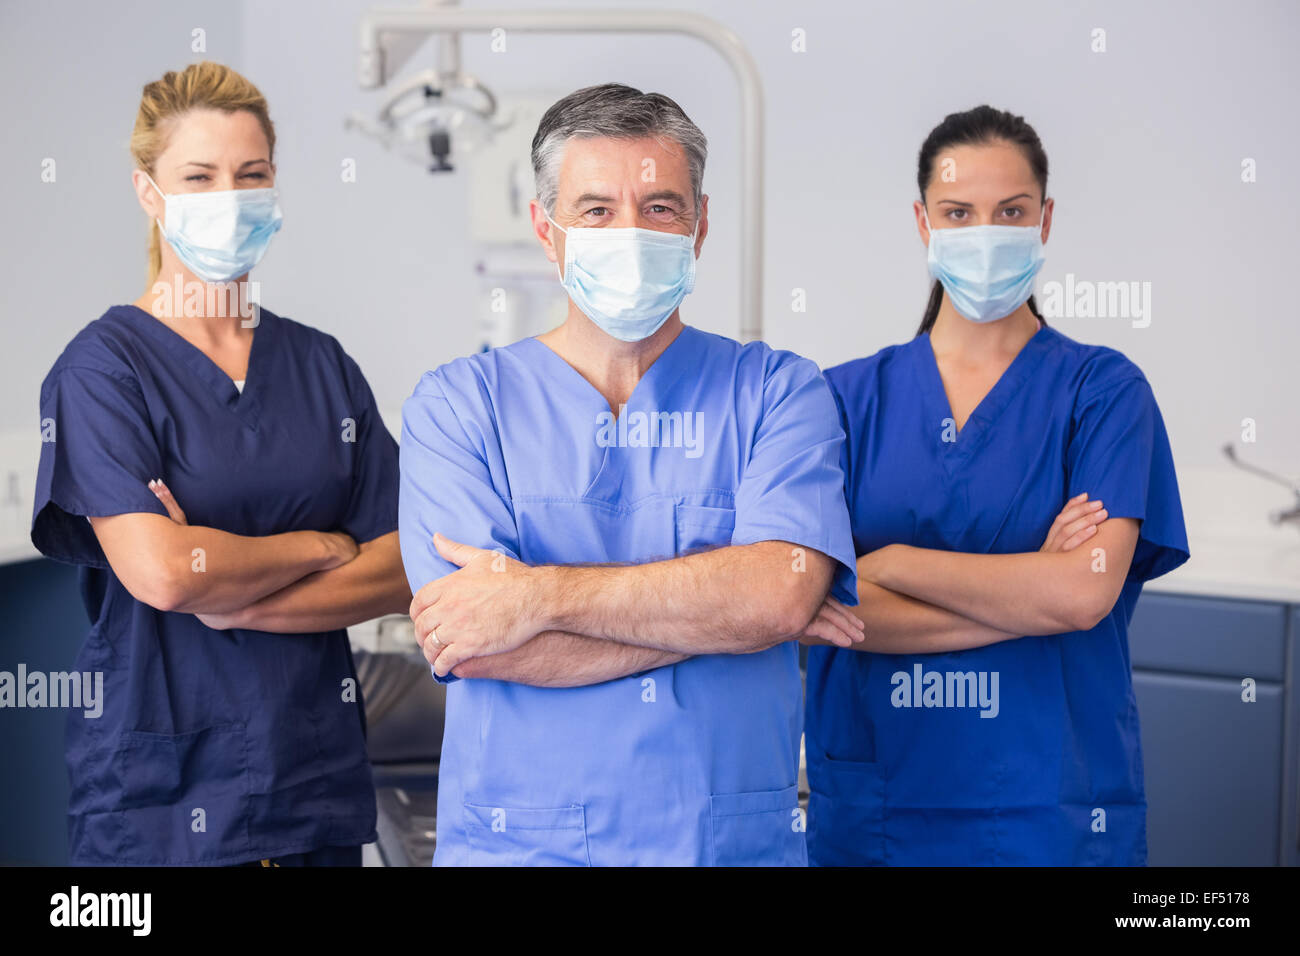 Co-workers wearing surgical mask with arms crossed - Stock Image